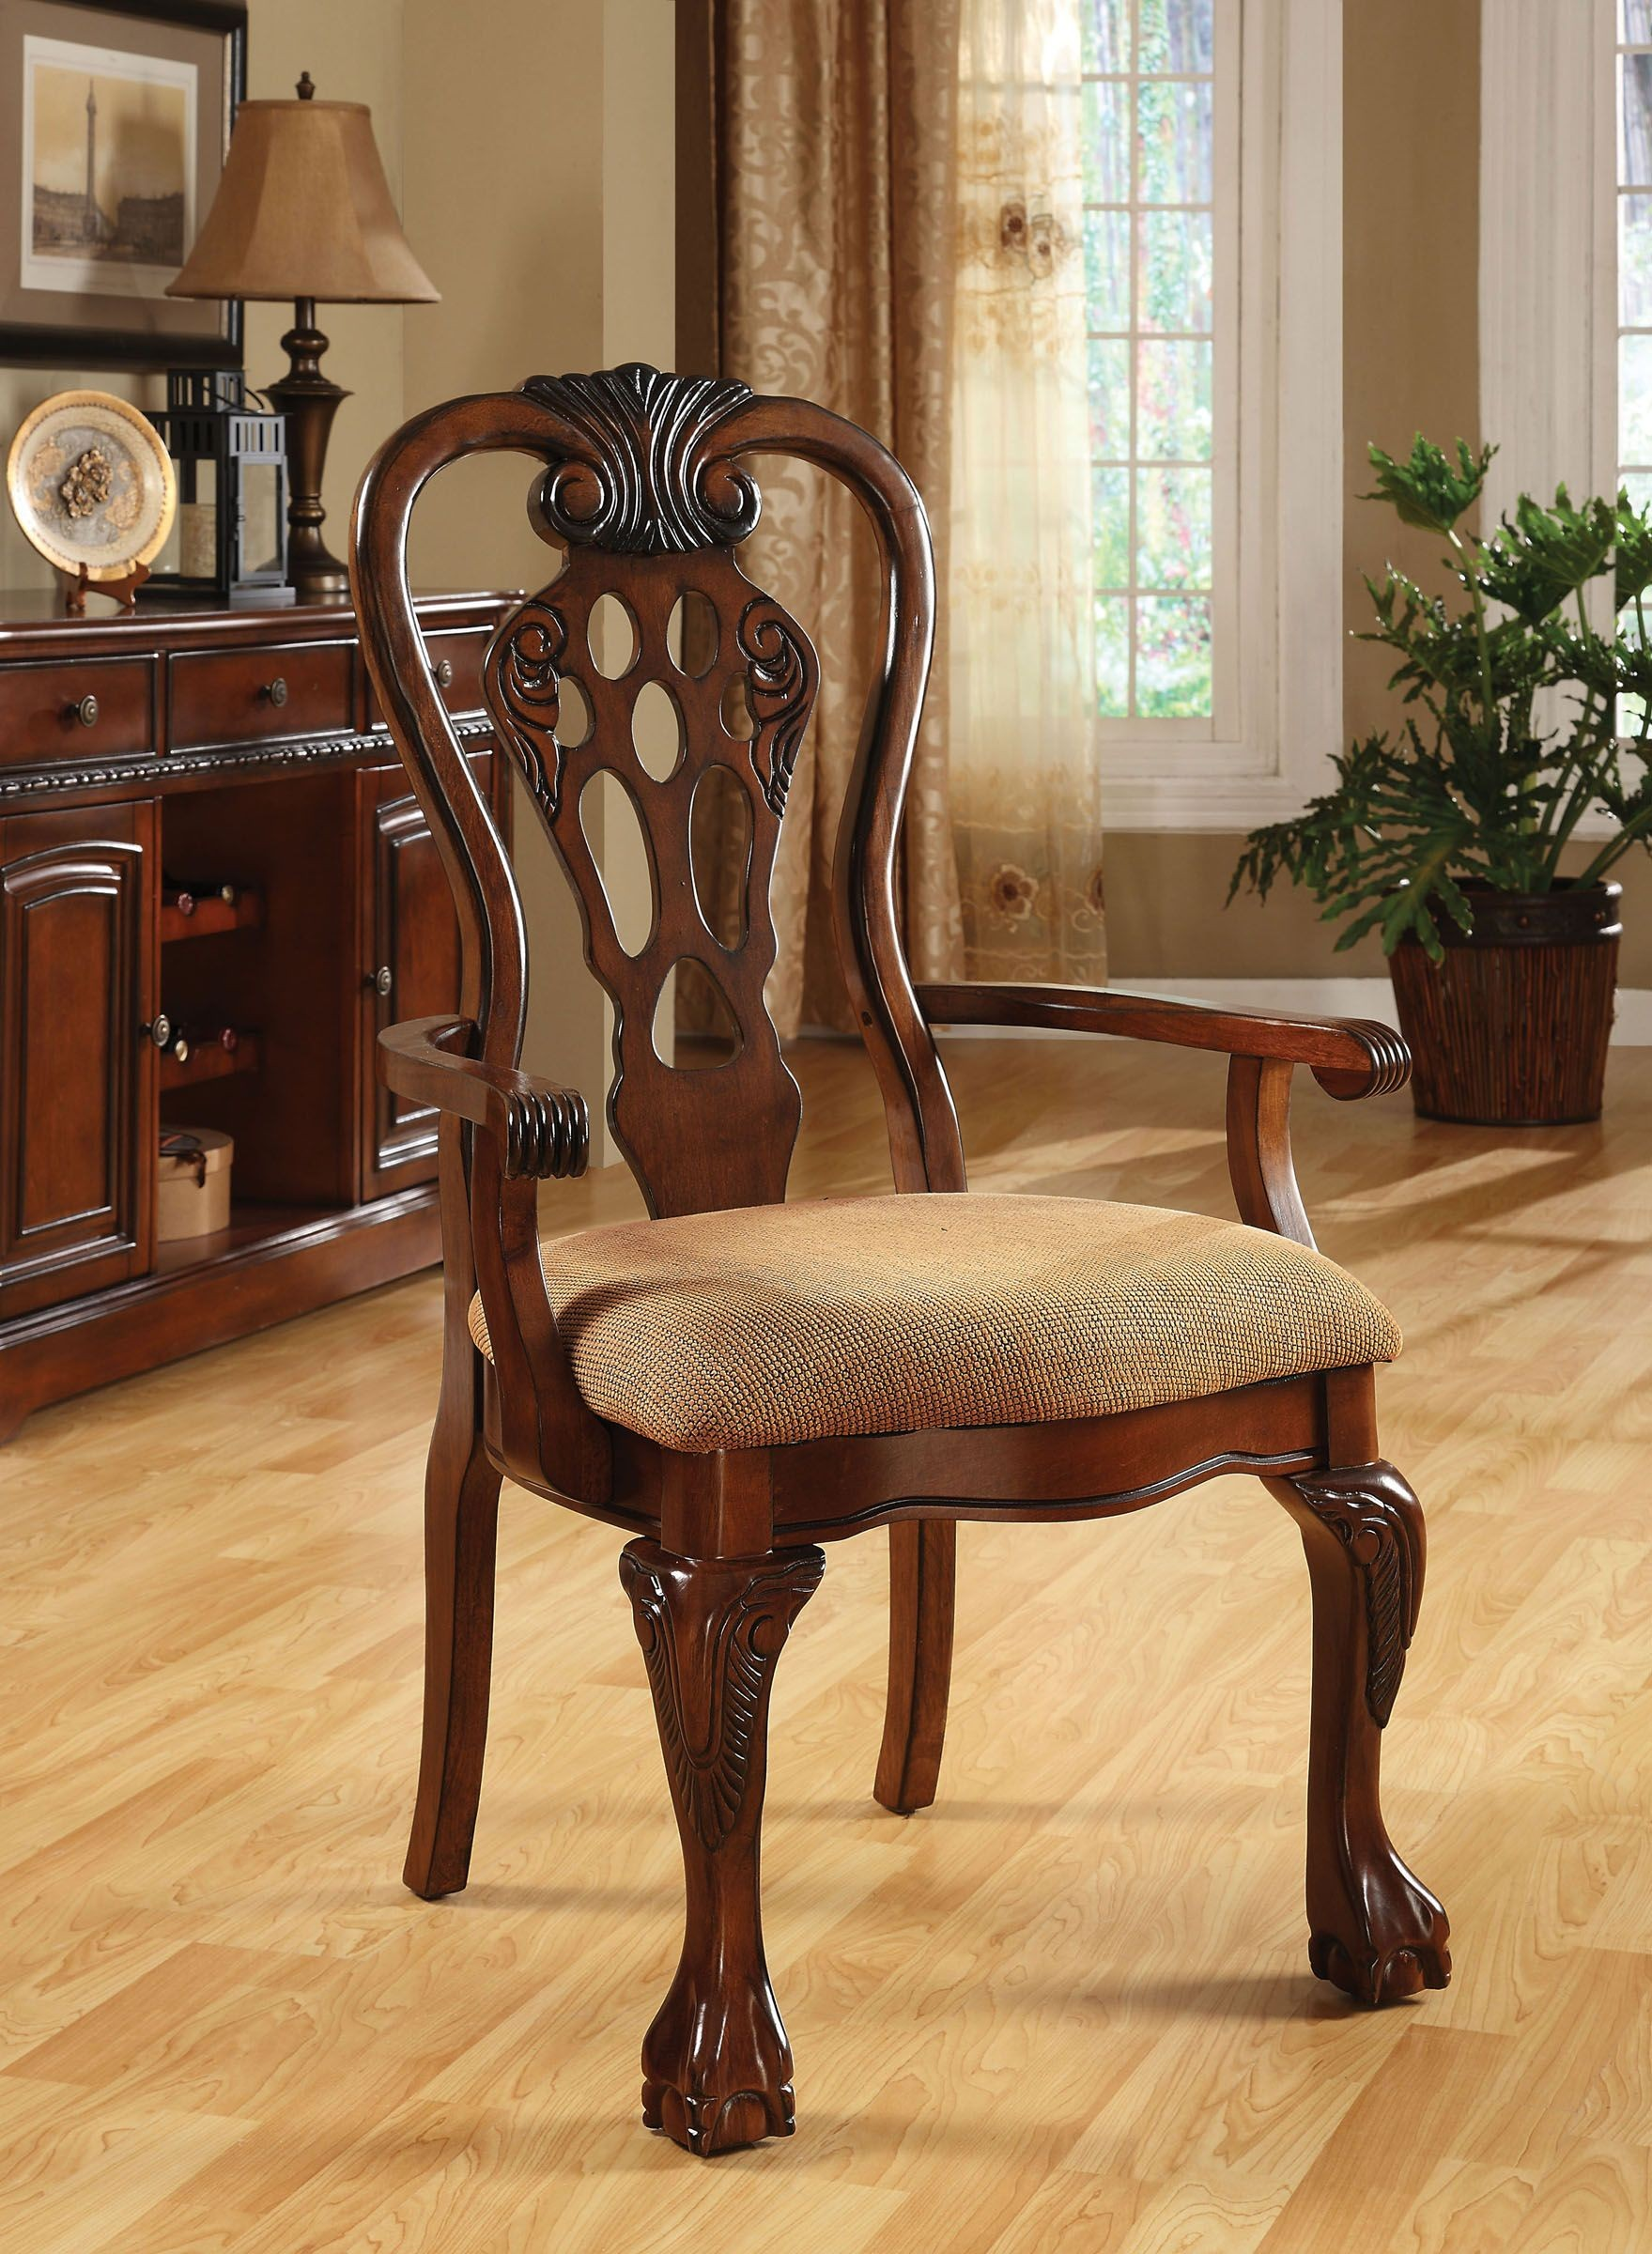 Pedestal Chairs George Town Rectangular Double Pedestal Formal Dining Room